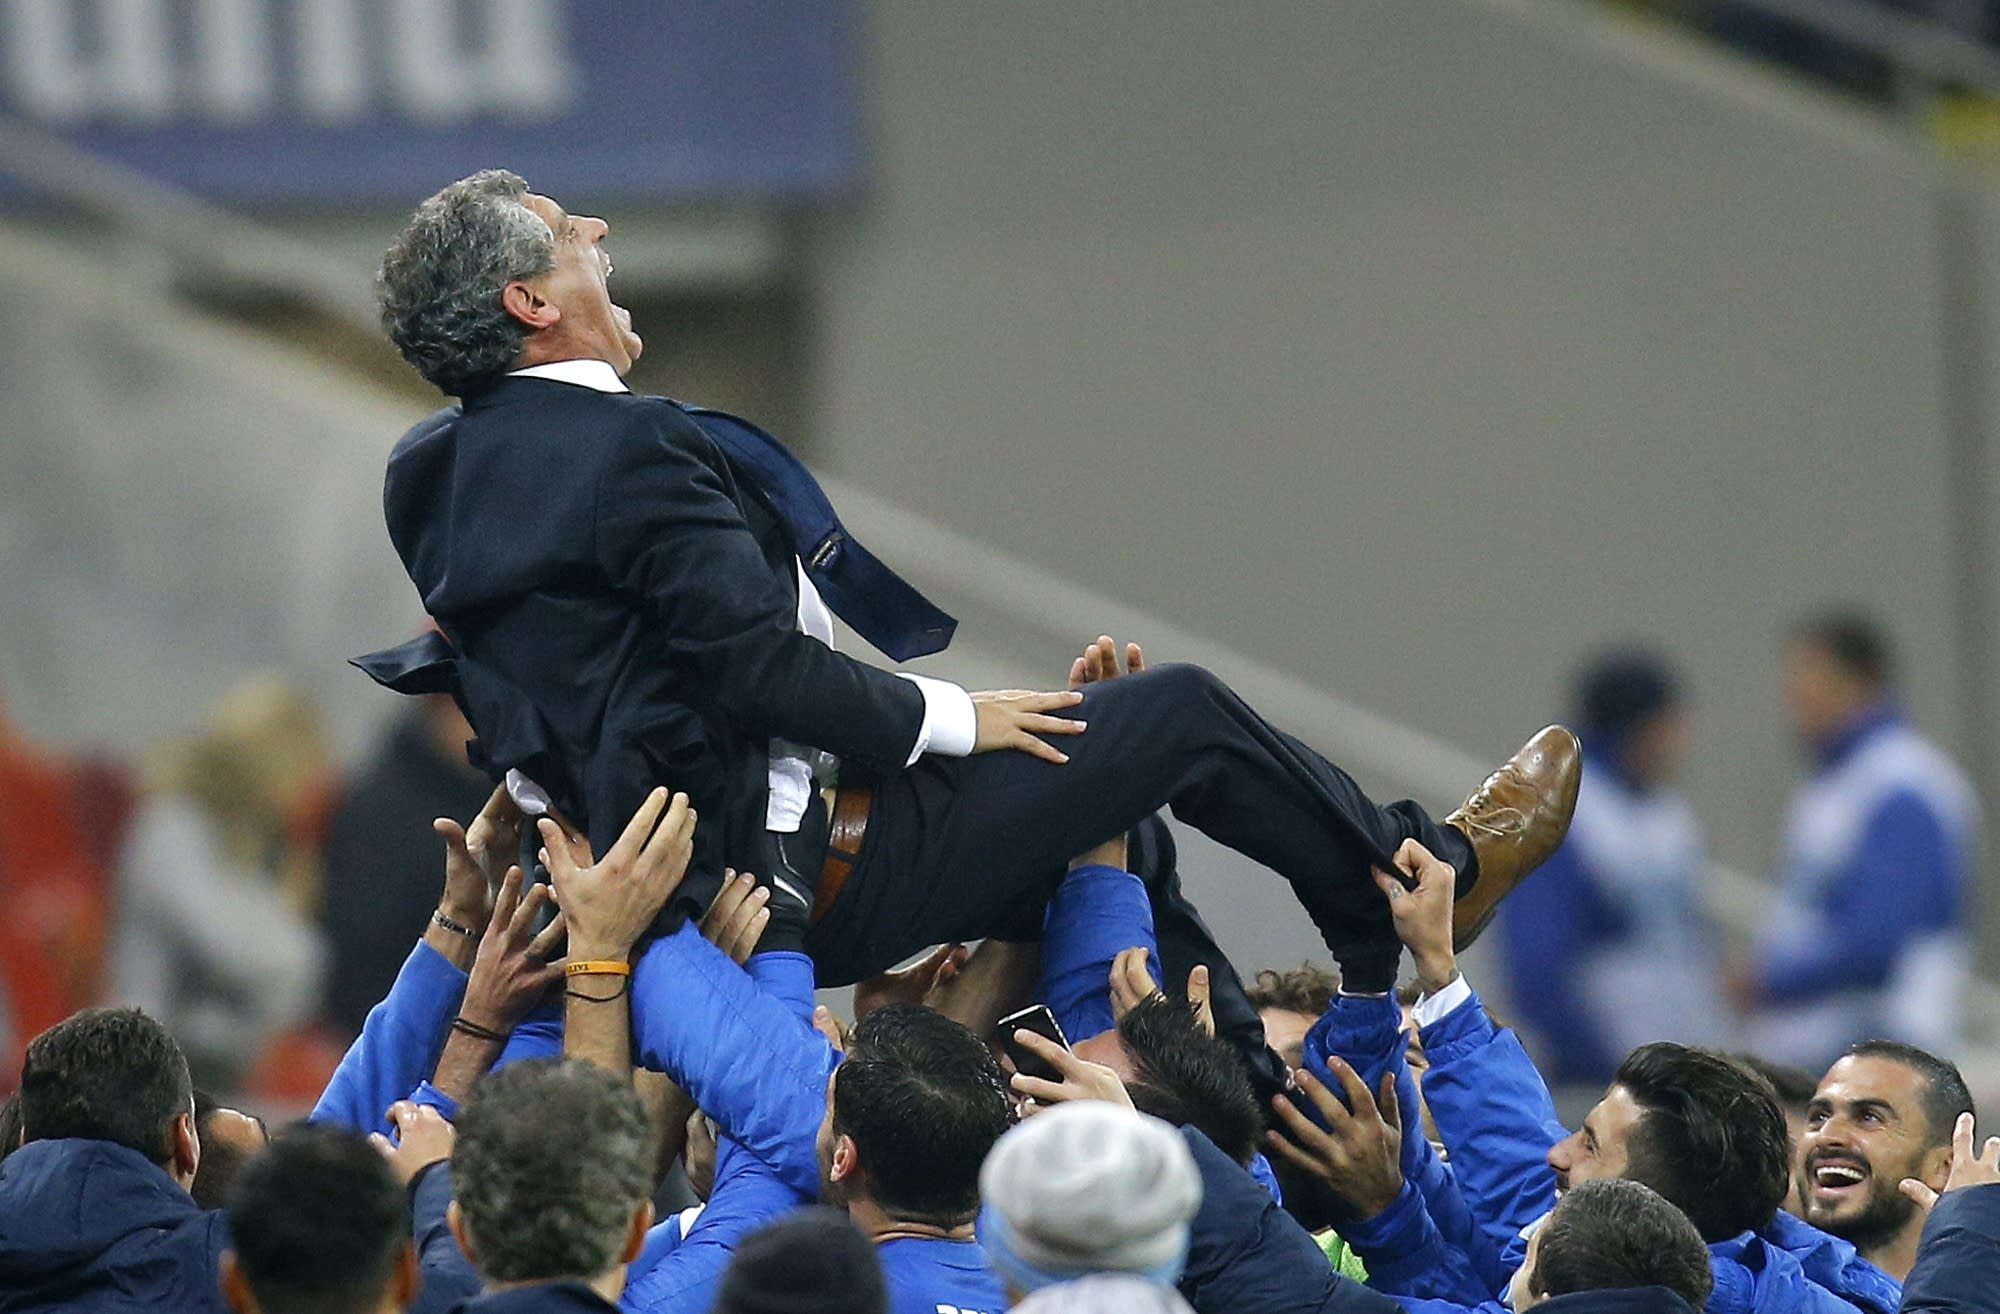 FILE - Fernando Santos, the coach of Greece is thrown into the air by his team at the end of the World Cup qualifying playoff second leg soccer match against Romania at the National Arena in Bucharest, Tuesday, Nov. 19, 2013. Greece drew the match 1-1 and qualified for Brazil 2014 4-2 on aggregate. Greece's Football Association said Thursday Feb. 27, 2014, that national coach Fernando Santos will step down following the World Cup in Brazil, after a successful four-year term on the job that saw the country rise to 12th place in the the FIFA world rankings. (AP Photo/Vadim Ghirda, File)